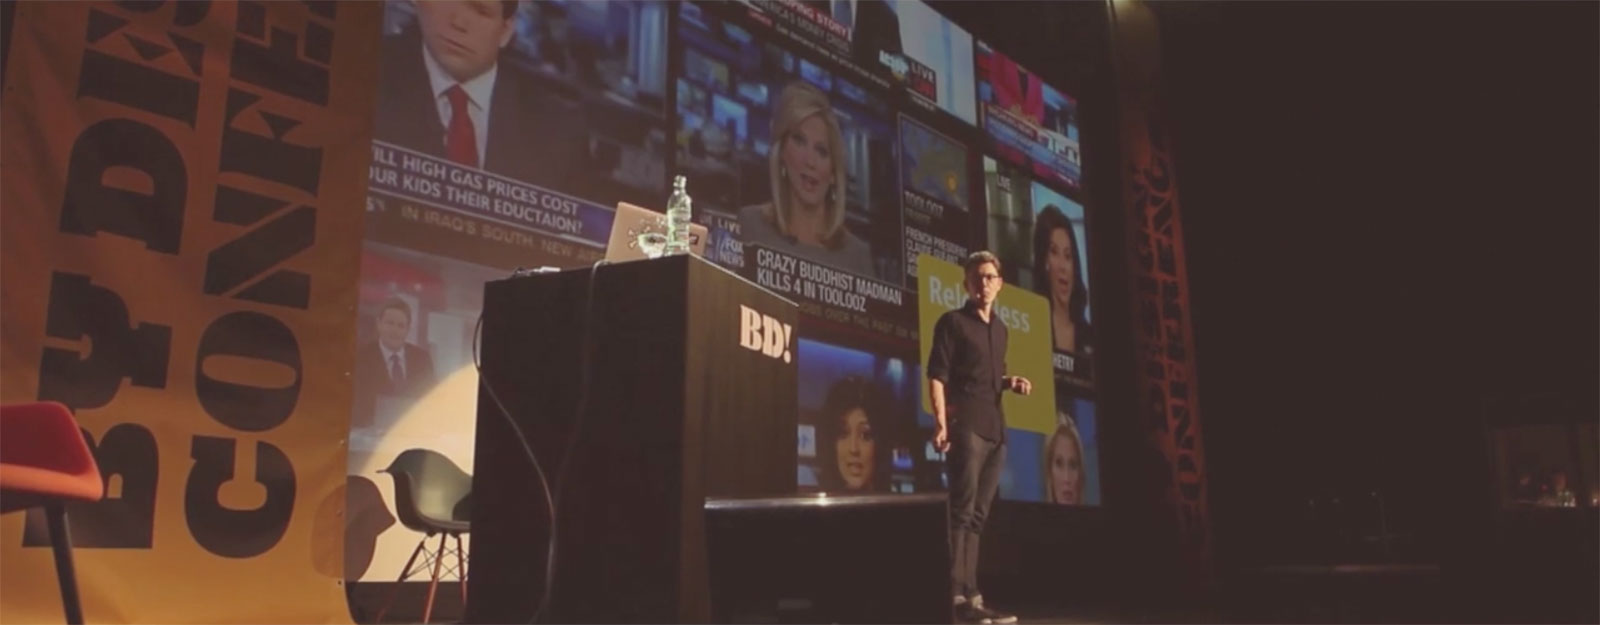 Watch the By Design 2014 video